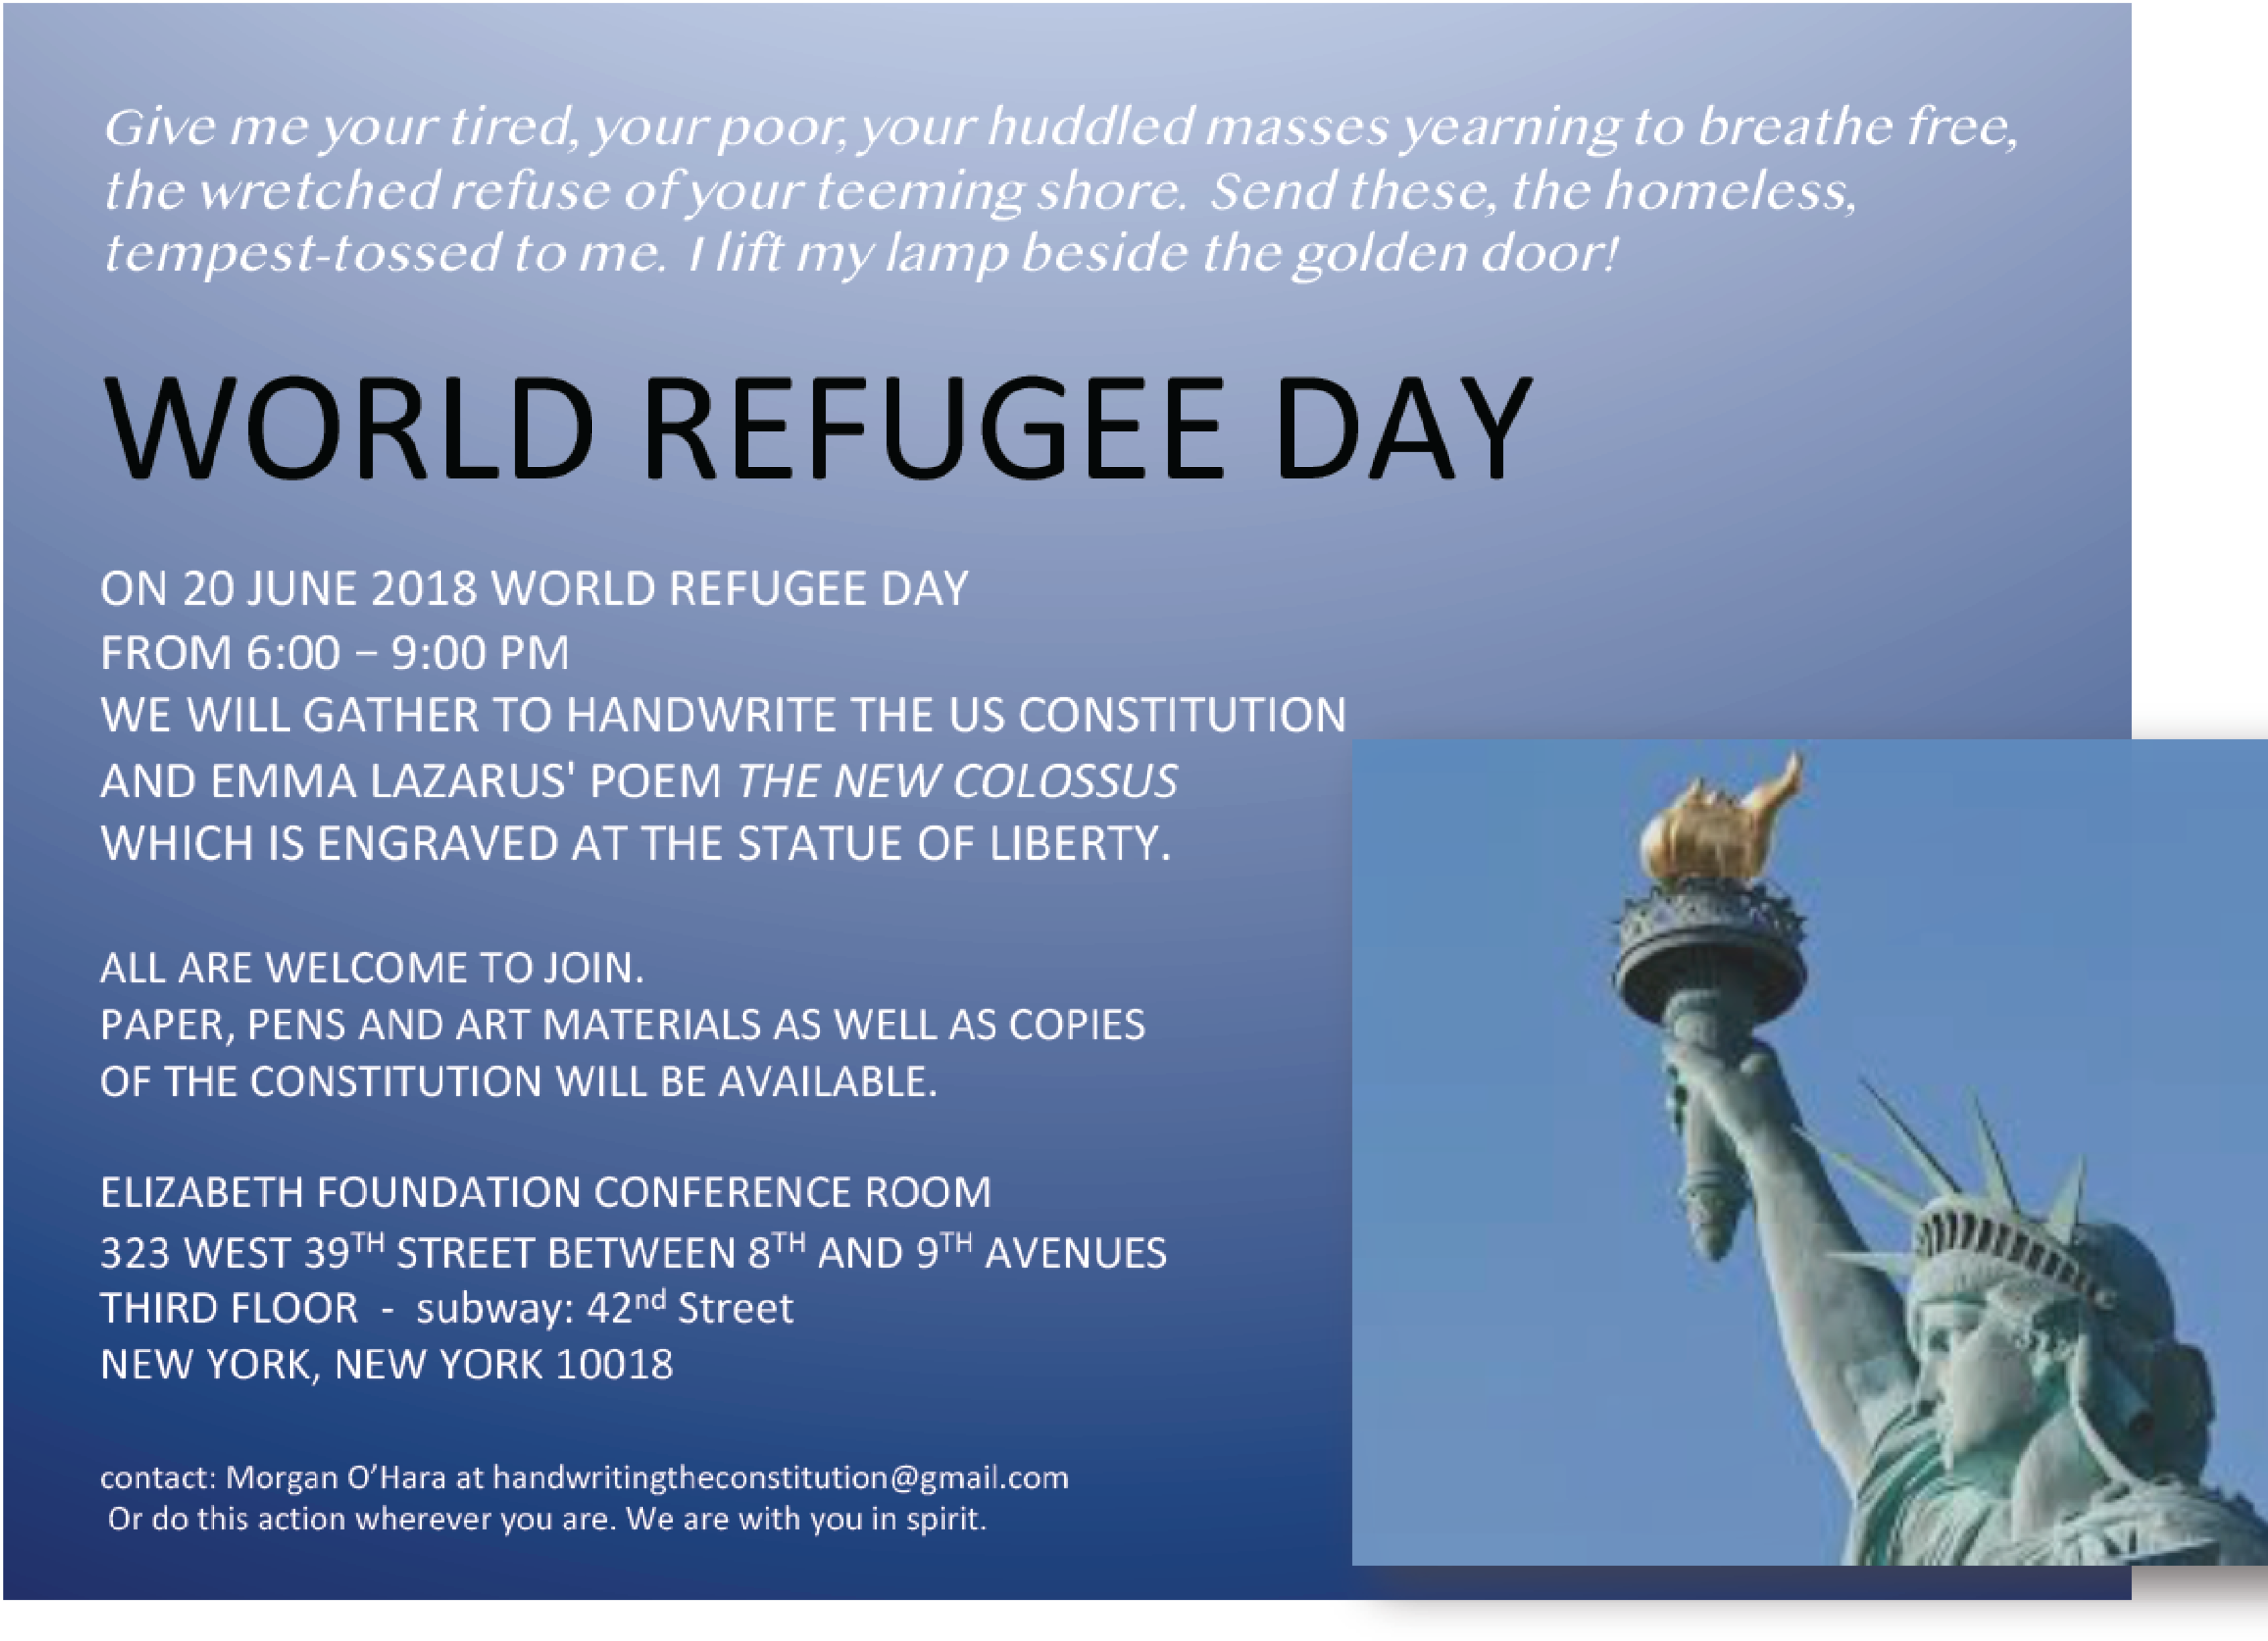 20 JUNE 2018WORLD REFUGEE DAYNEW YORK CITY - SESSION 57MORGAN O'HARA